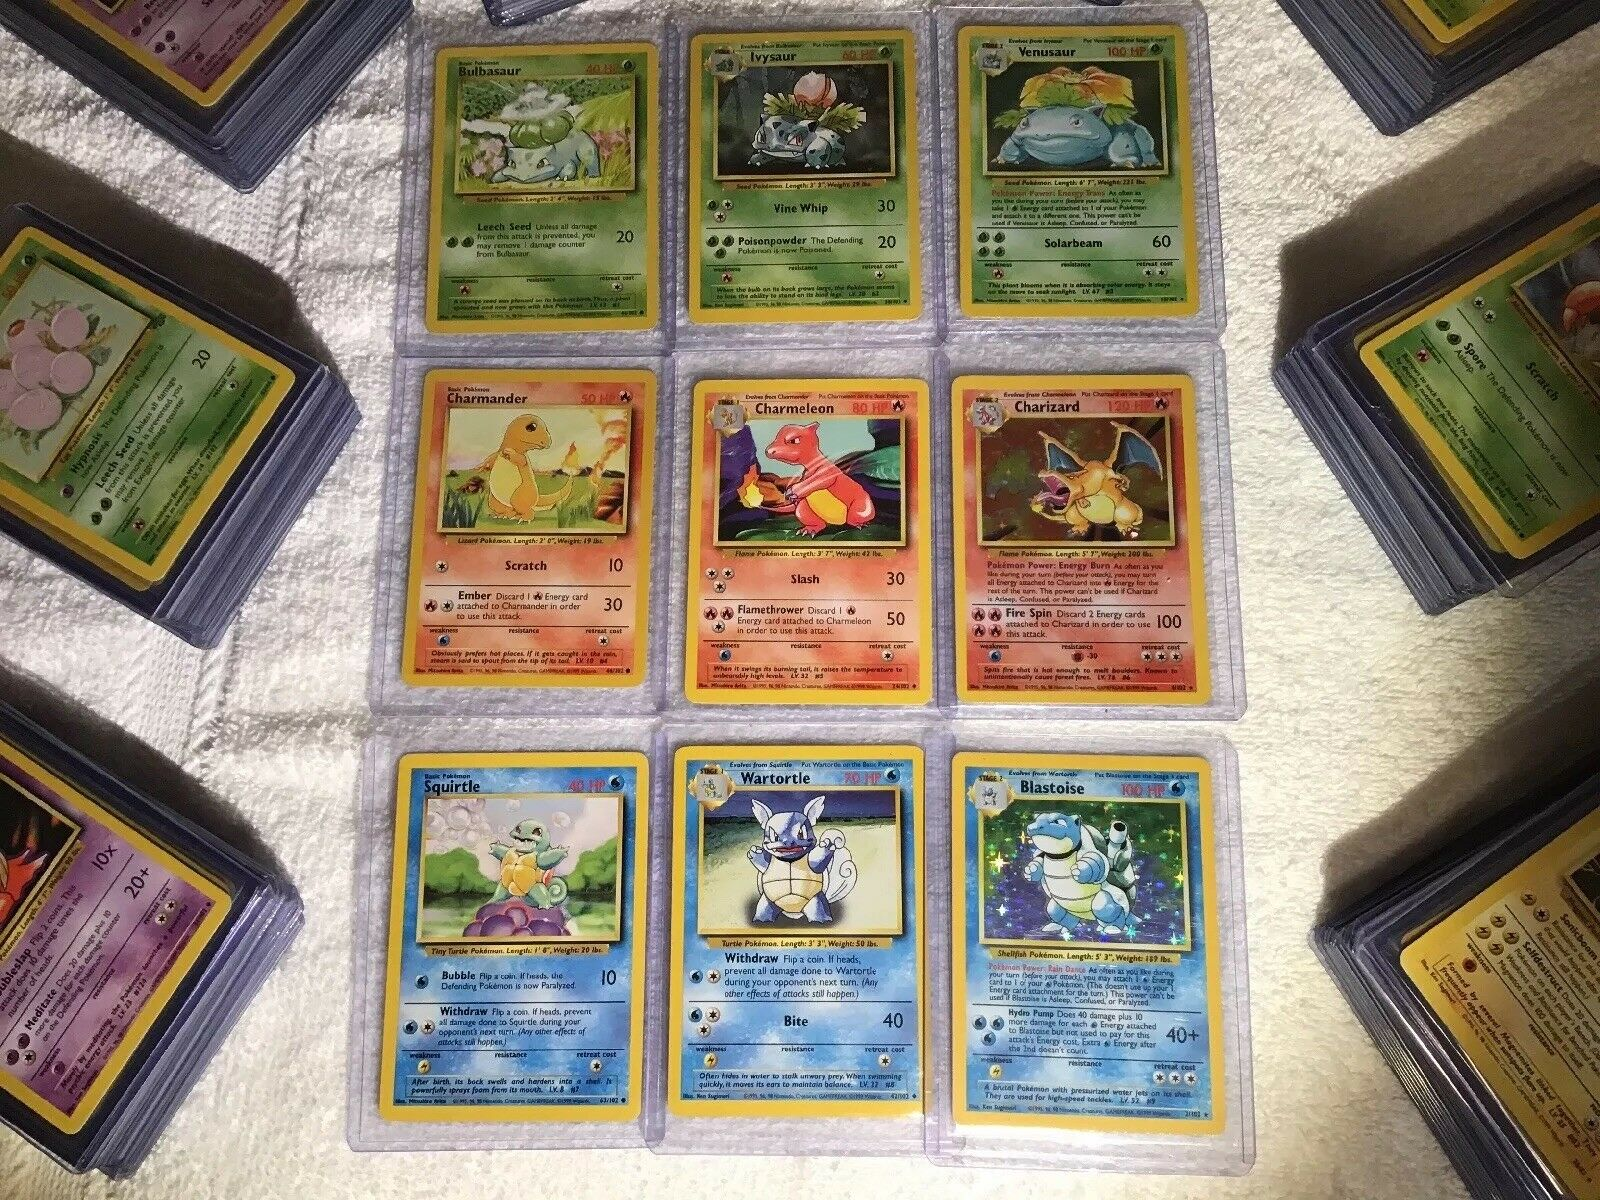 Pokemon 151 Set Complete - 100% Original Classic Cards - ALL 45 HOLOS INCLUDED